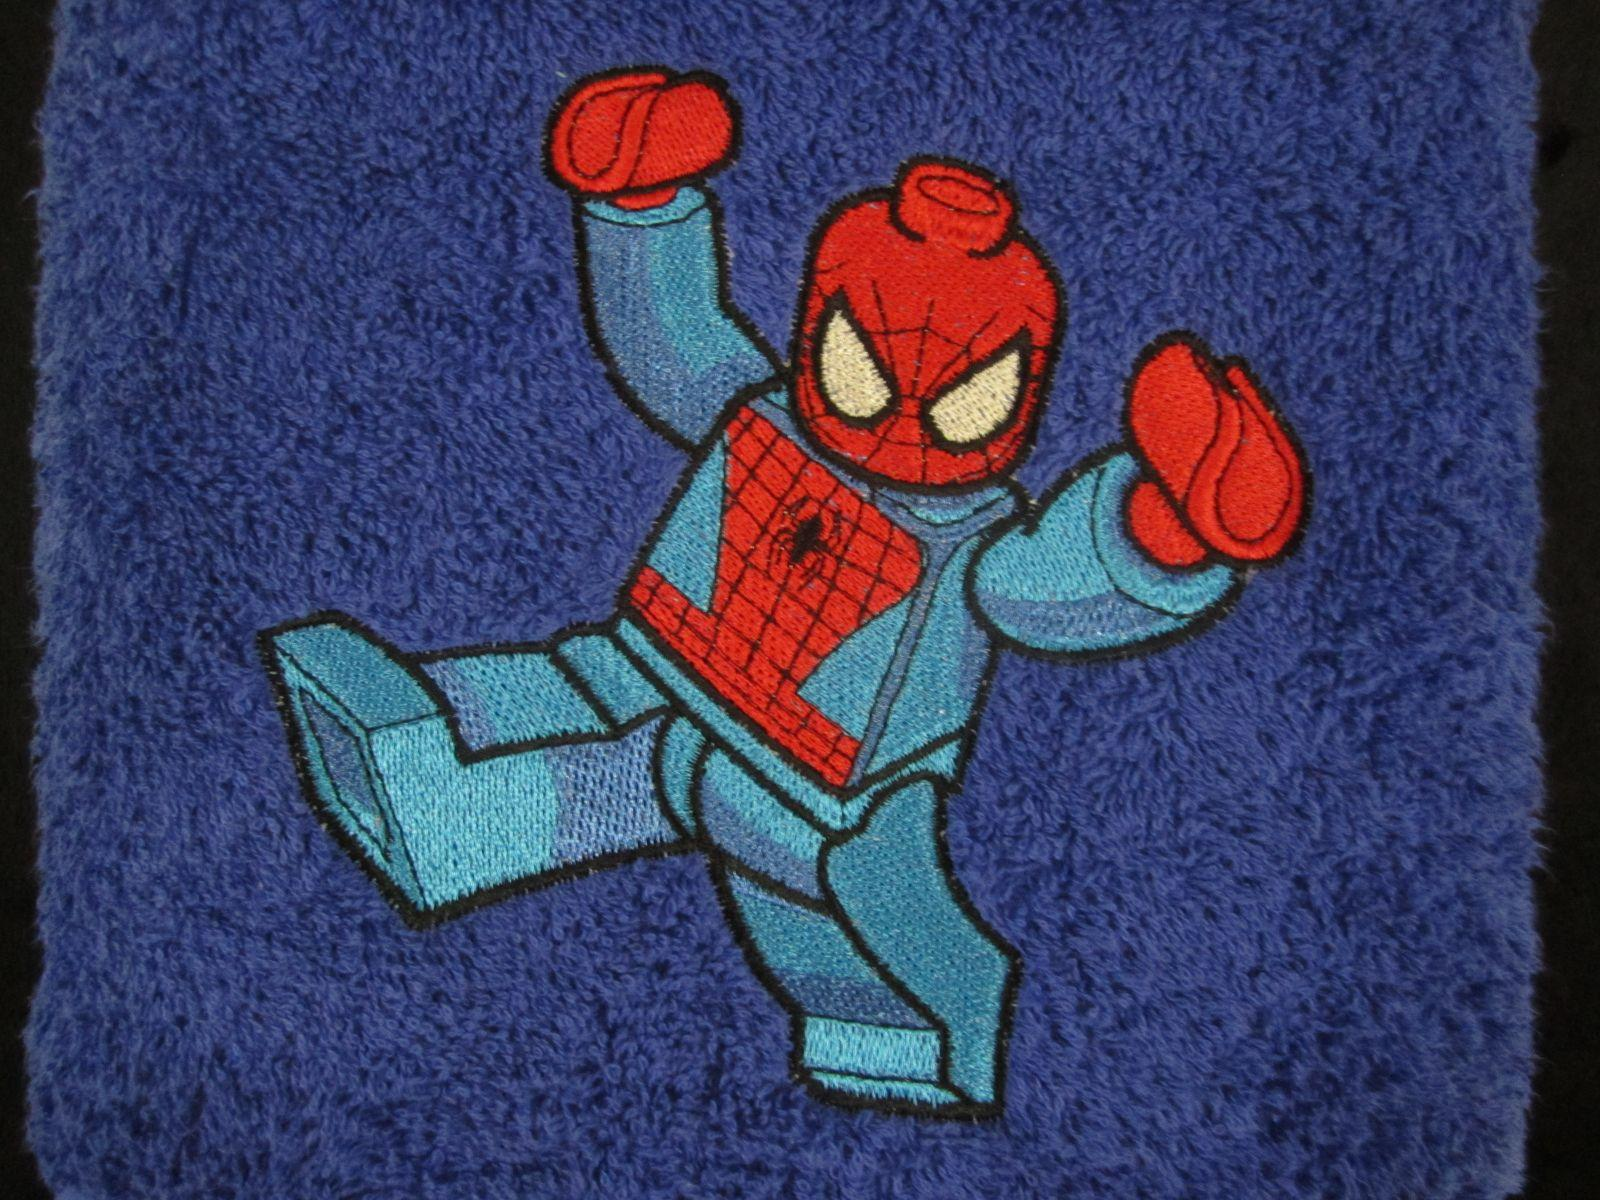 Towel with embroidered Lego Spiderman design